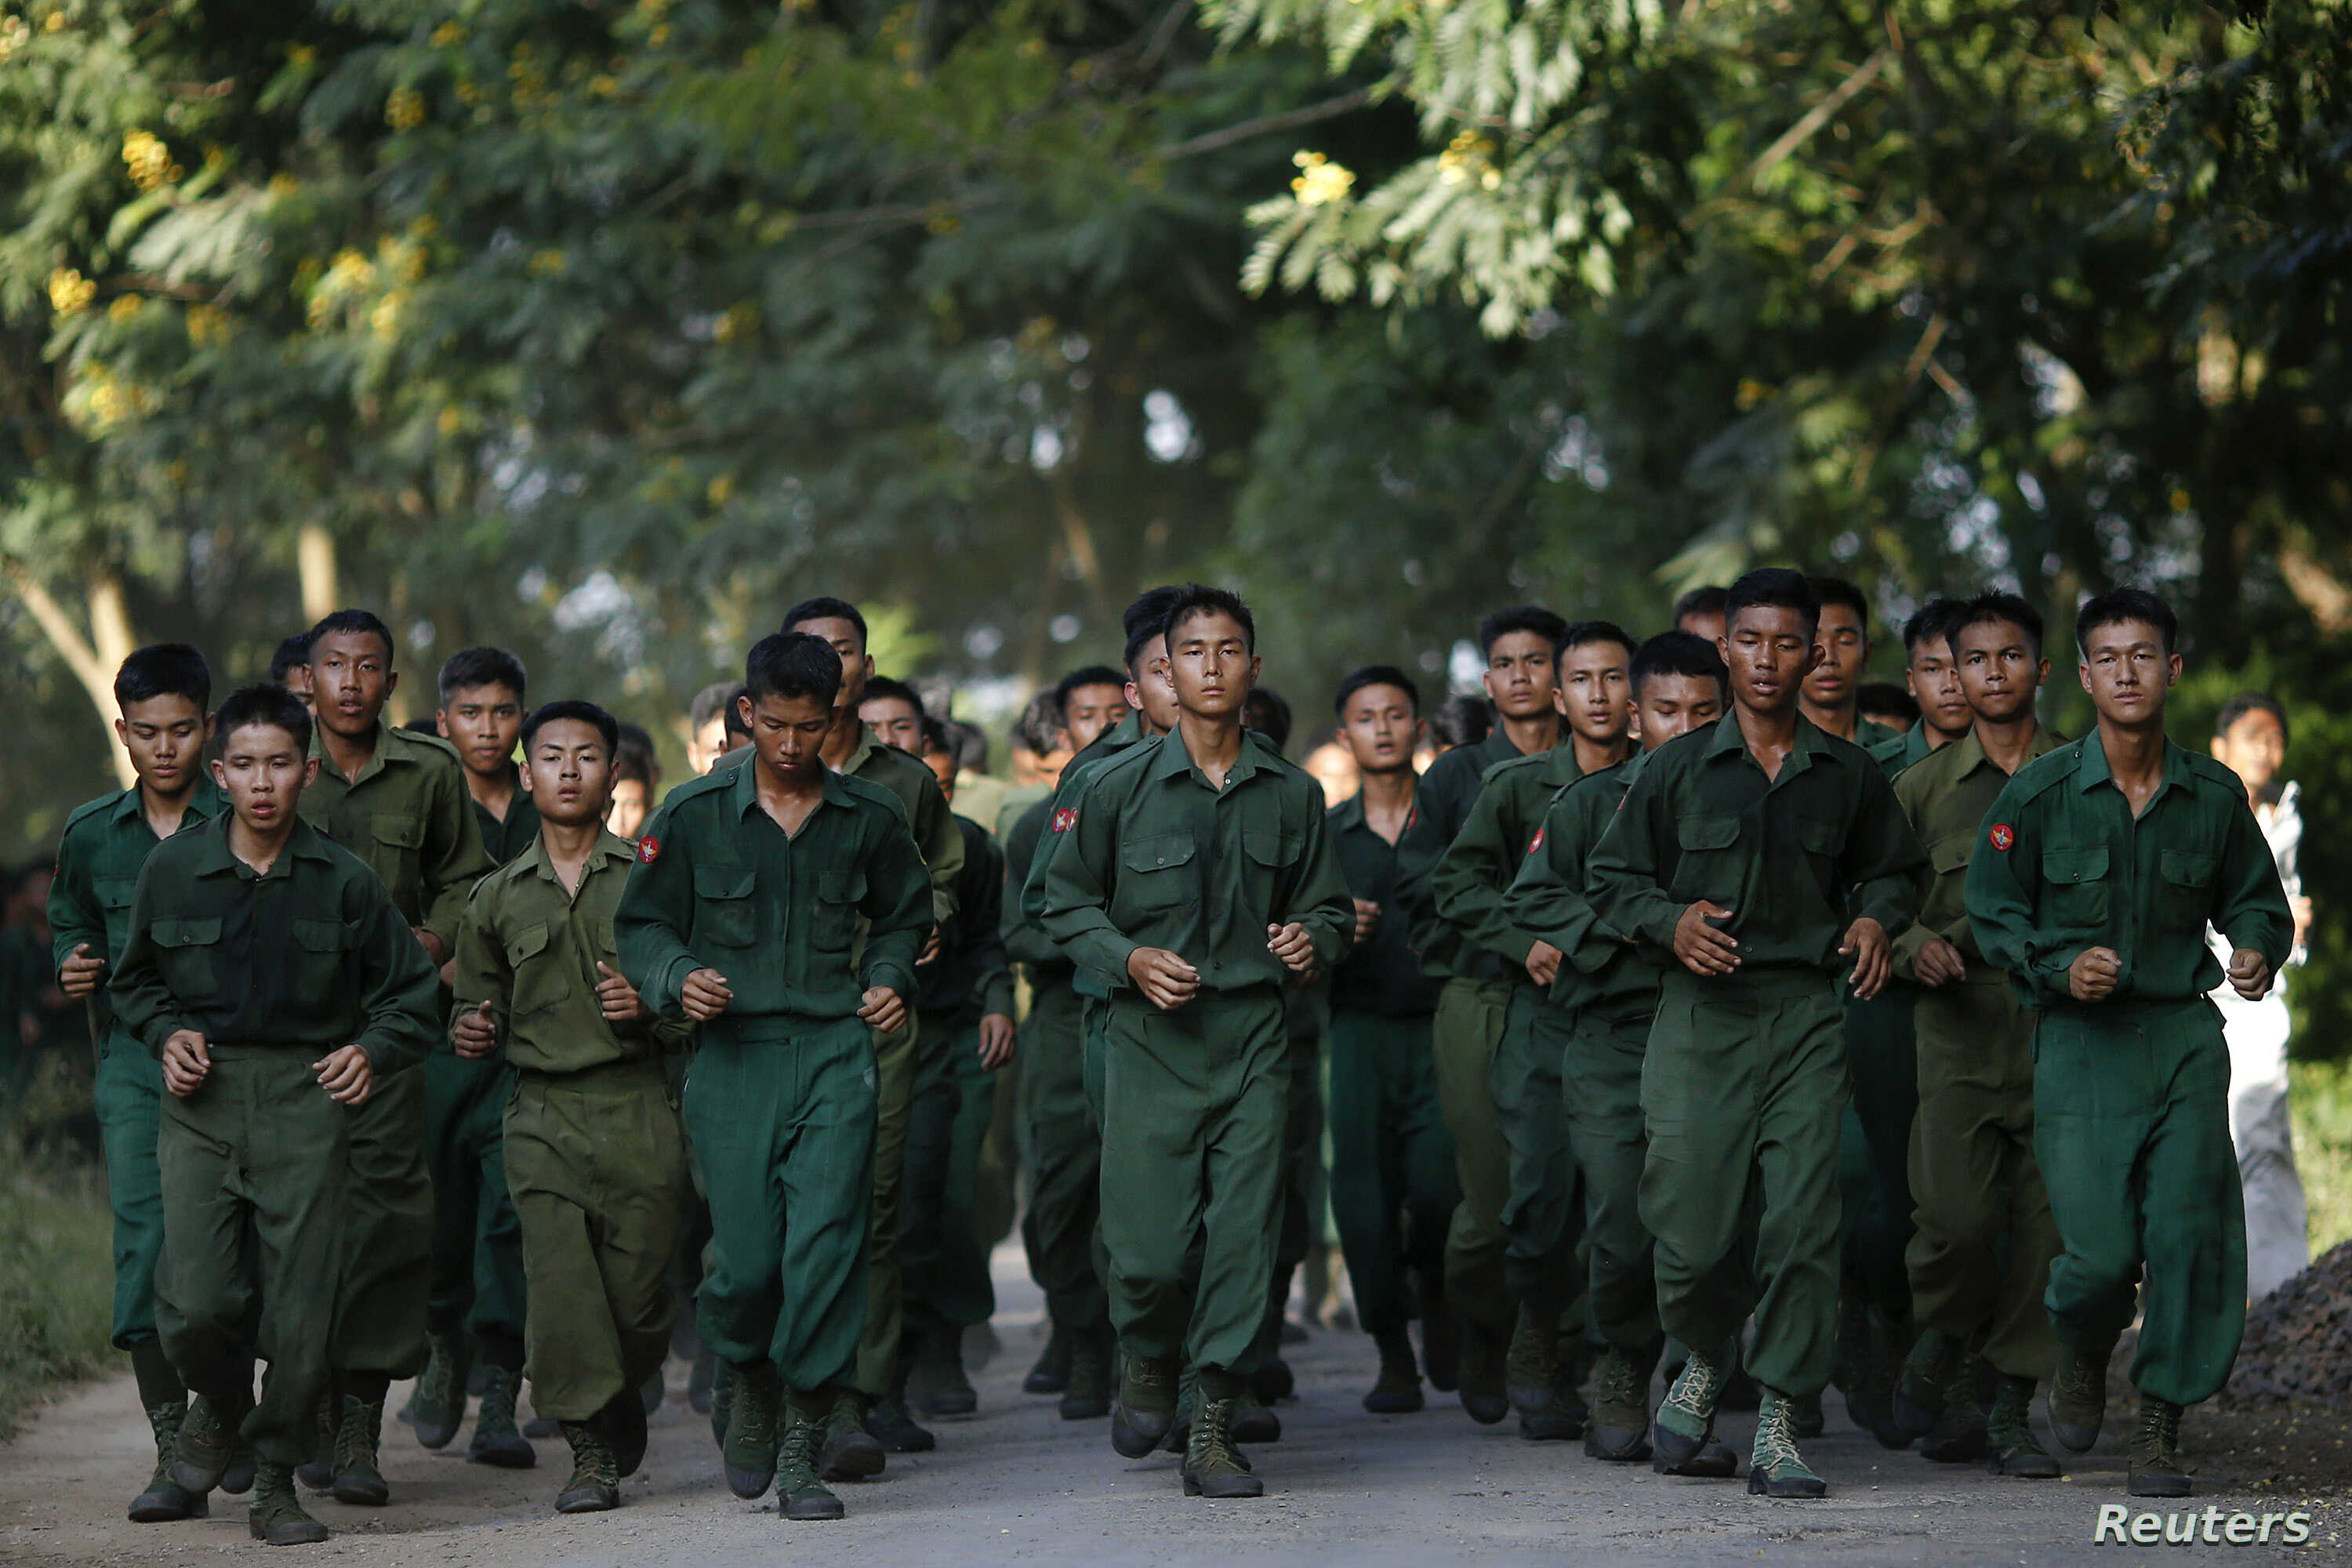 Military cadets of the Defense Services Academy run as they exercise around their compound in Pyin Oo Lwin, Myanmar, Sept. 21, 2012.